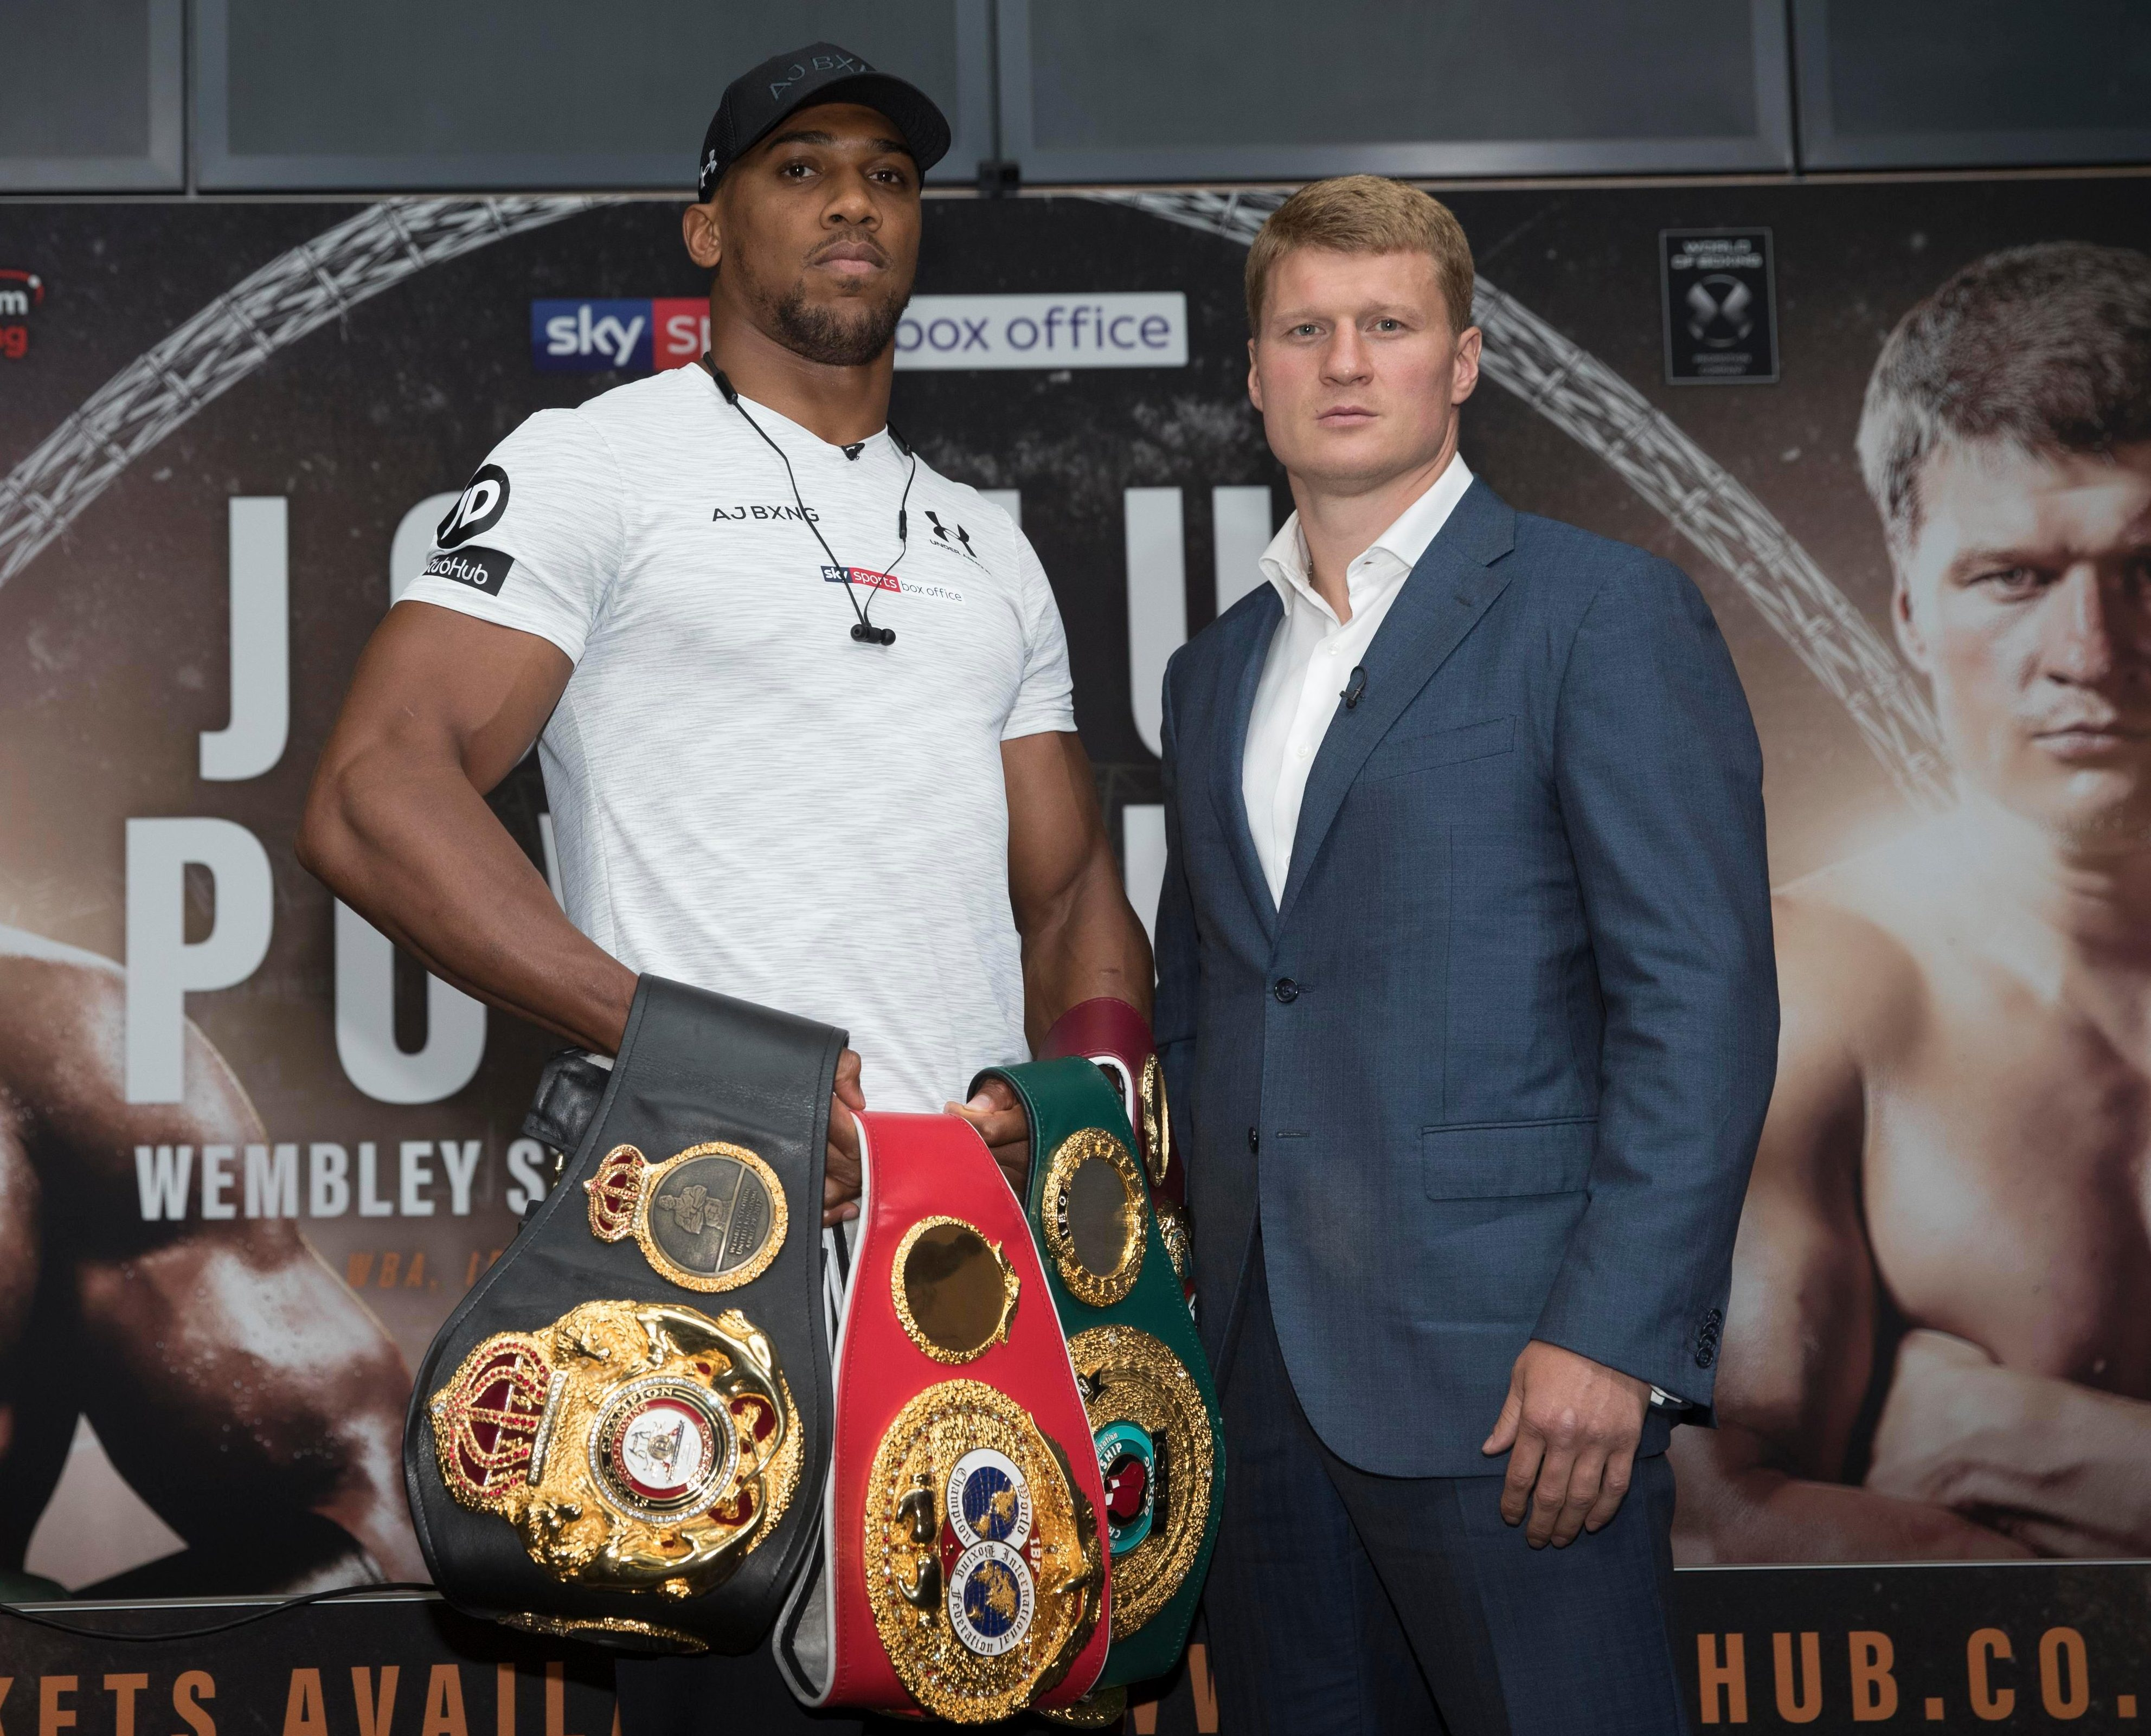 AJ's next opponent Alexander Povetkin has been convicted of doping twice